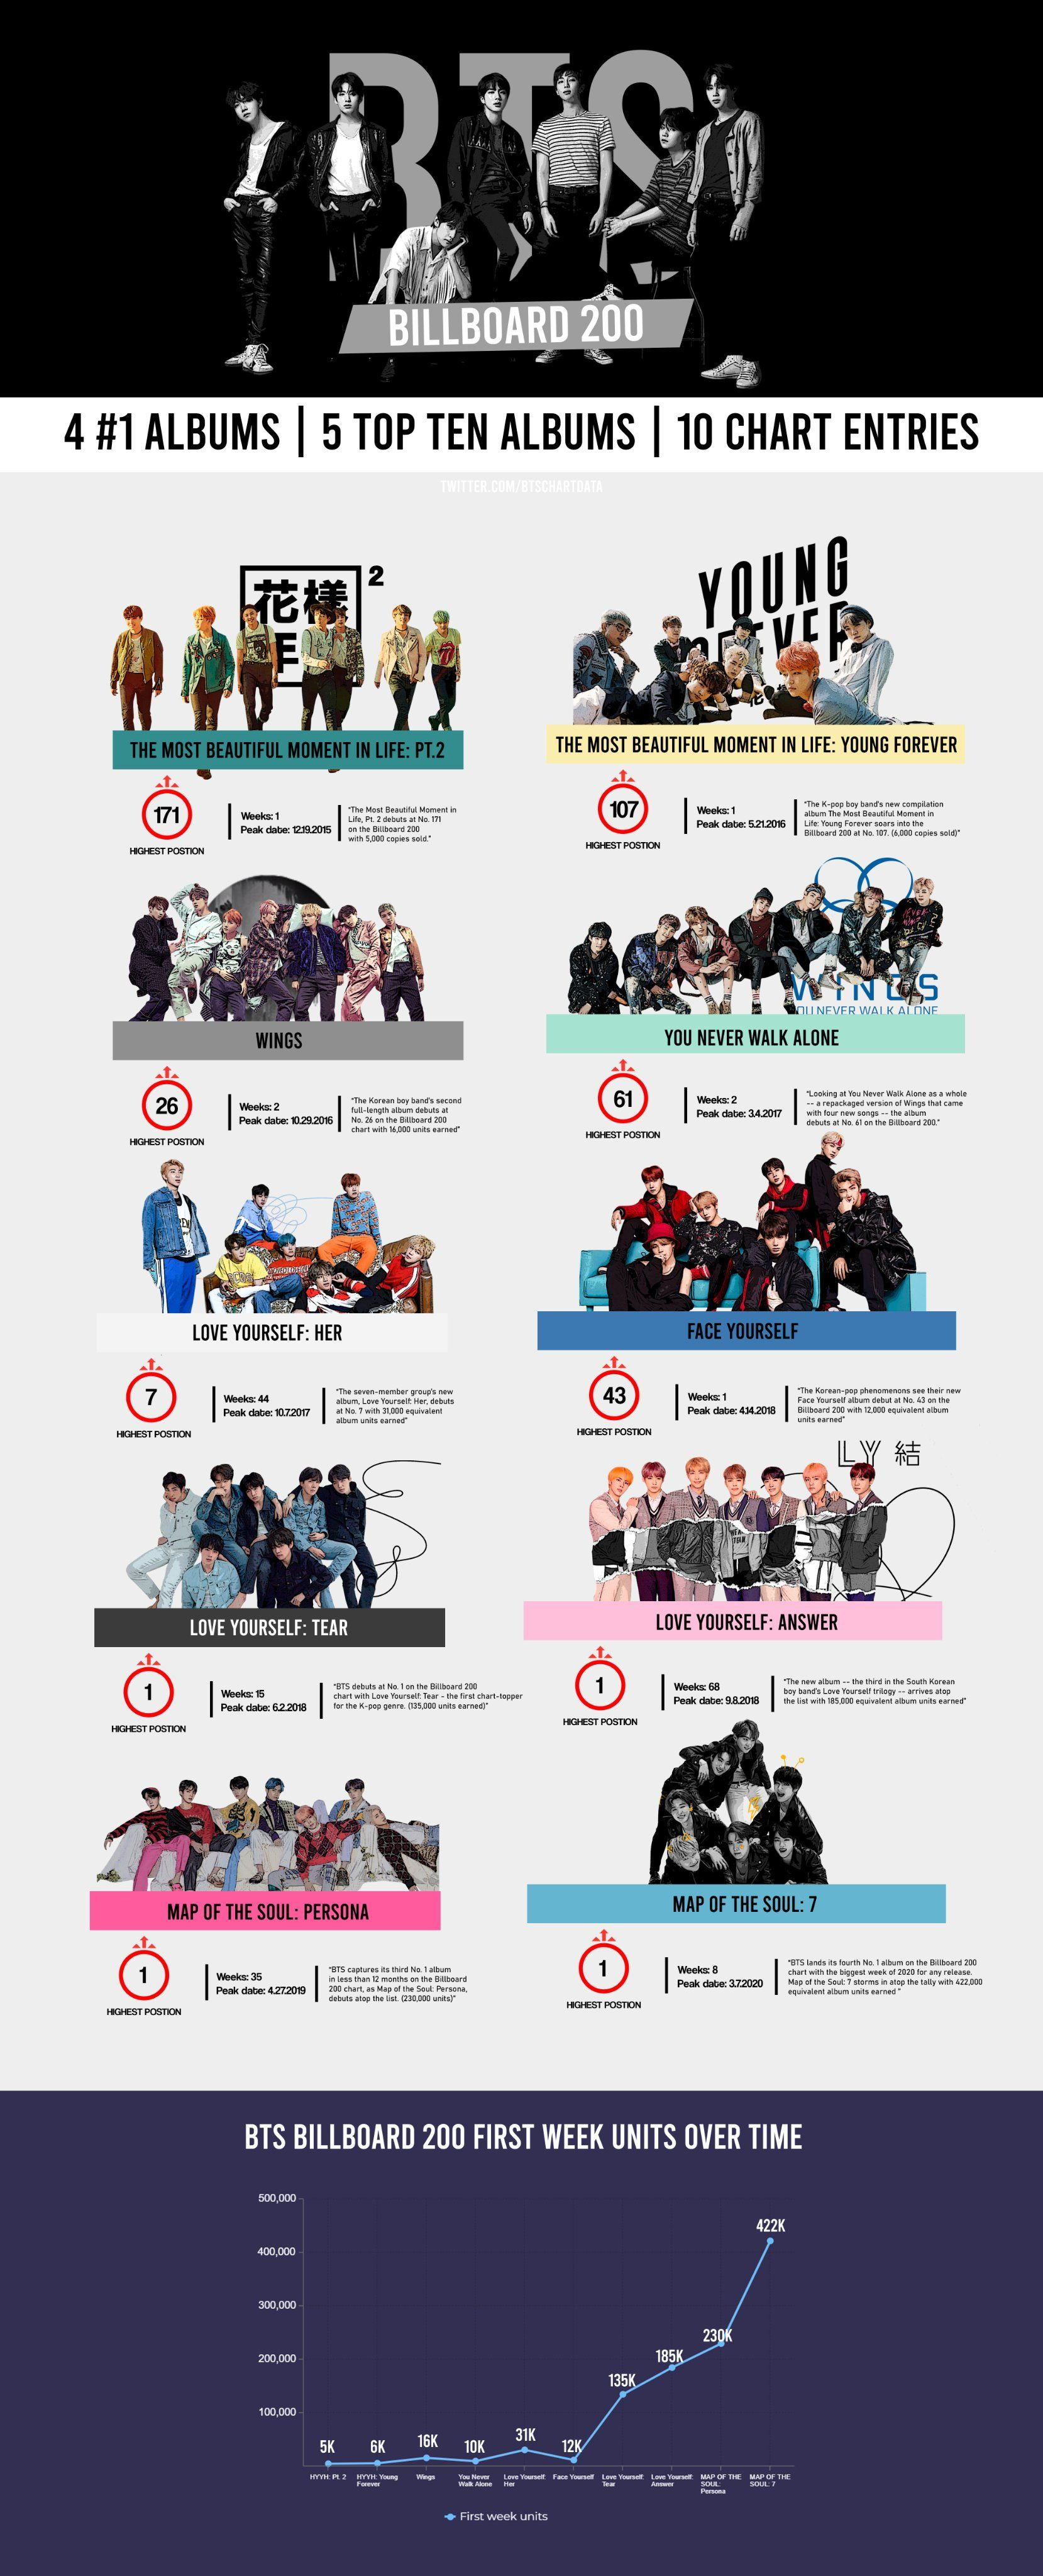 Bts History On Billboard200 Chart Bts History Bts Billboard Chart